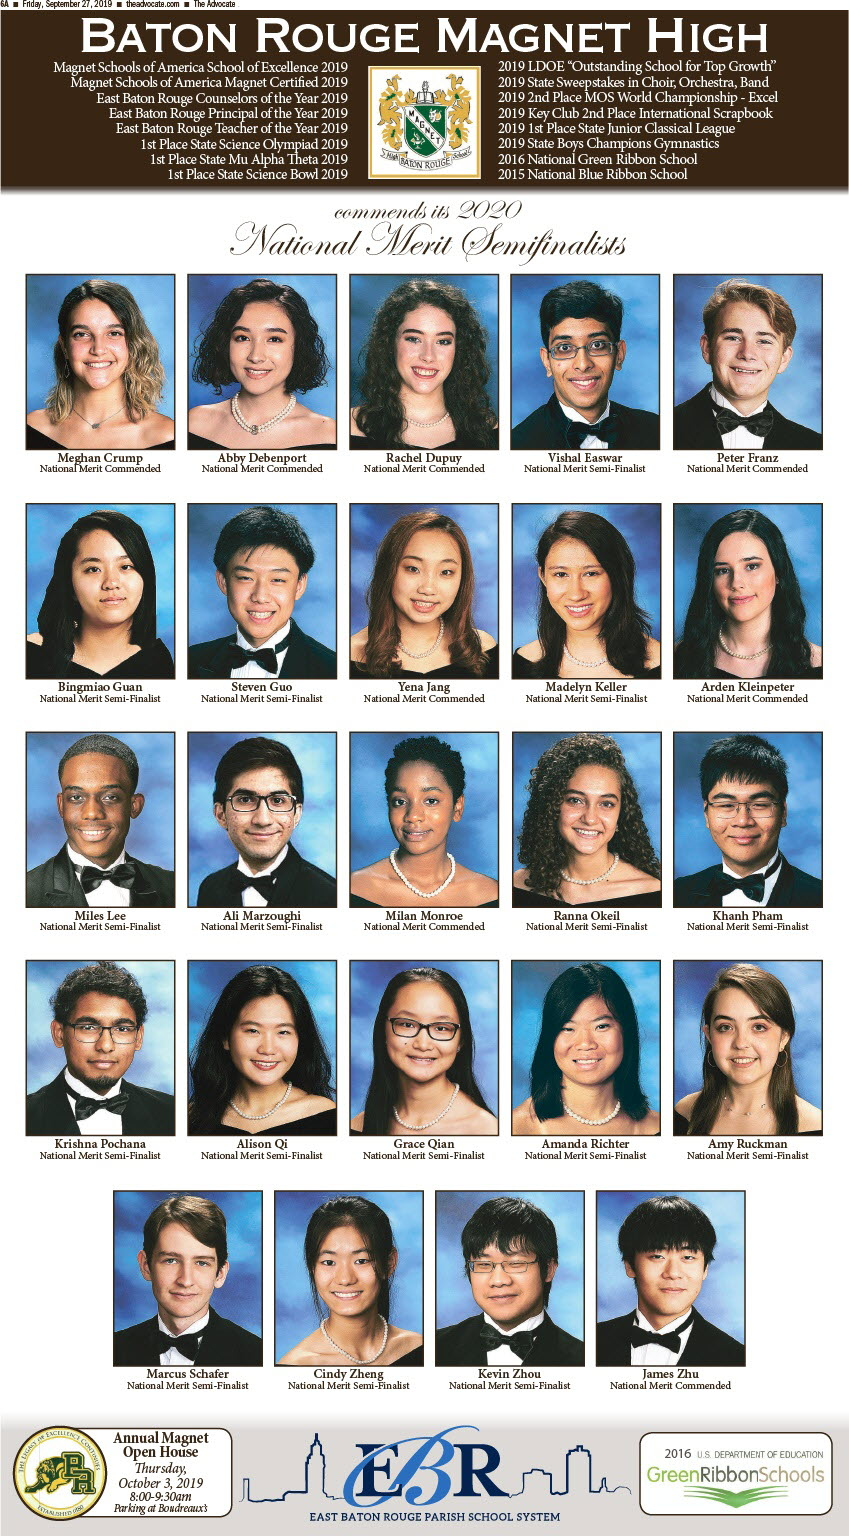 5 Dozen named as National Merit Semifinalists from Baton Rouge Area -16 BRMHS  Students are Semi-Finalists